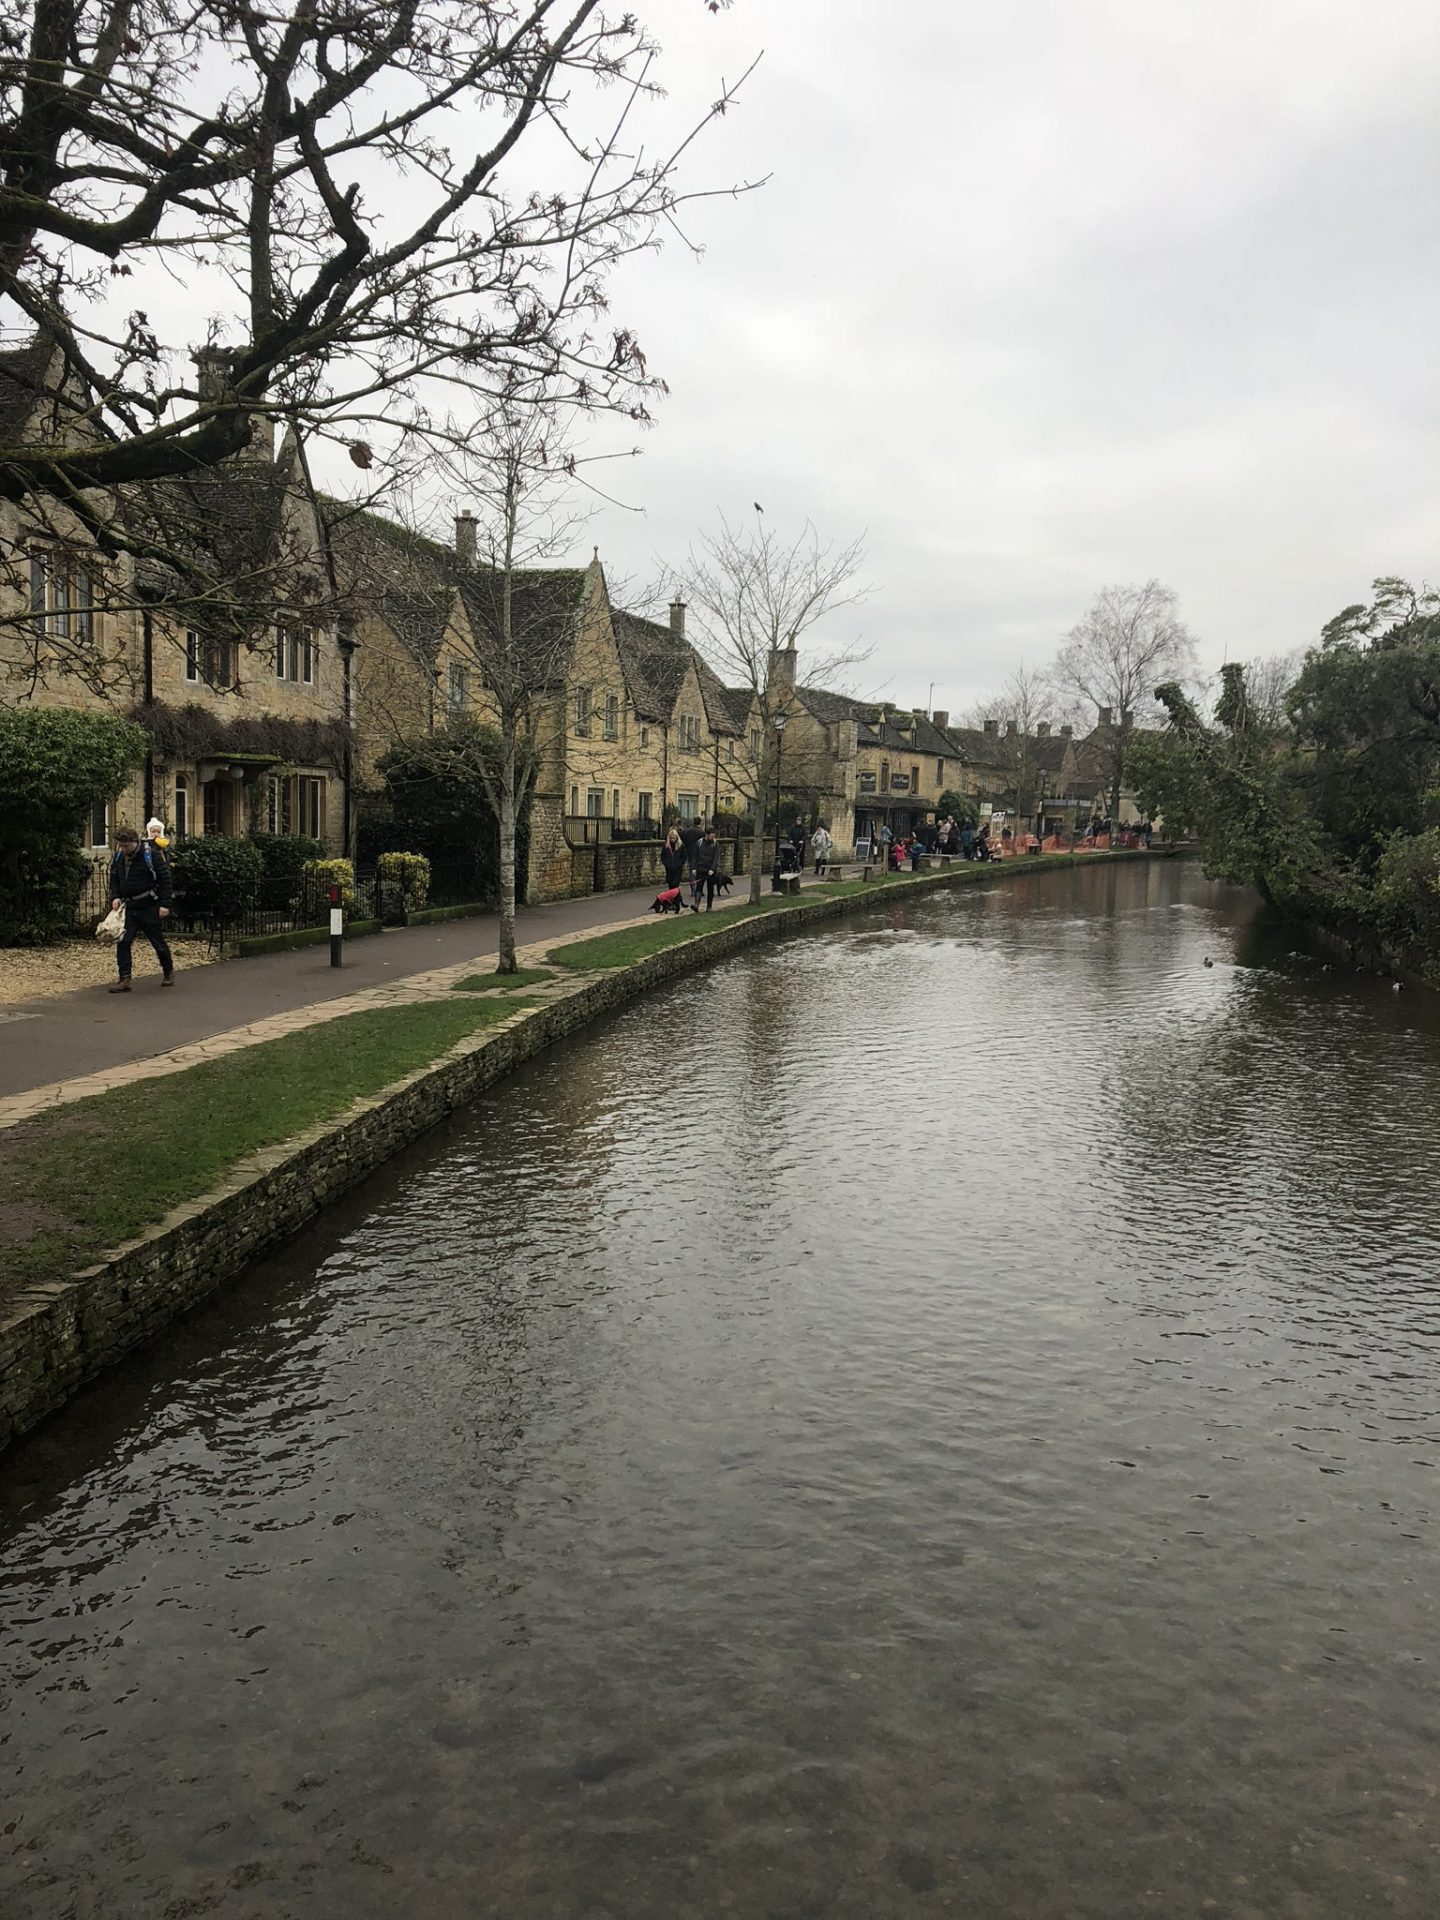 Home for the holidays: a trip to Bourton on the Water